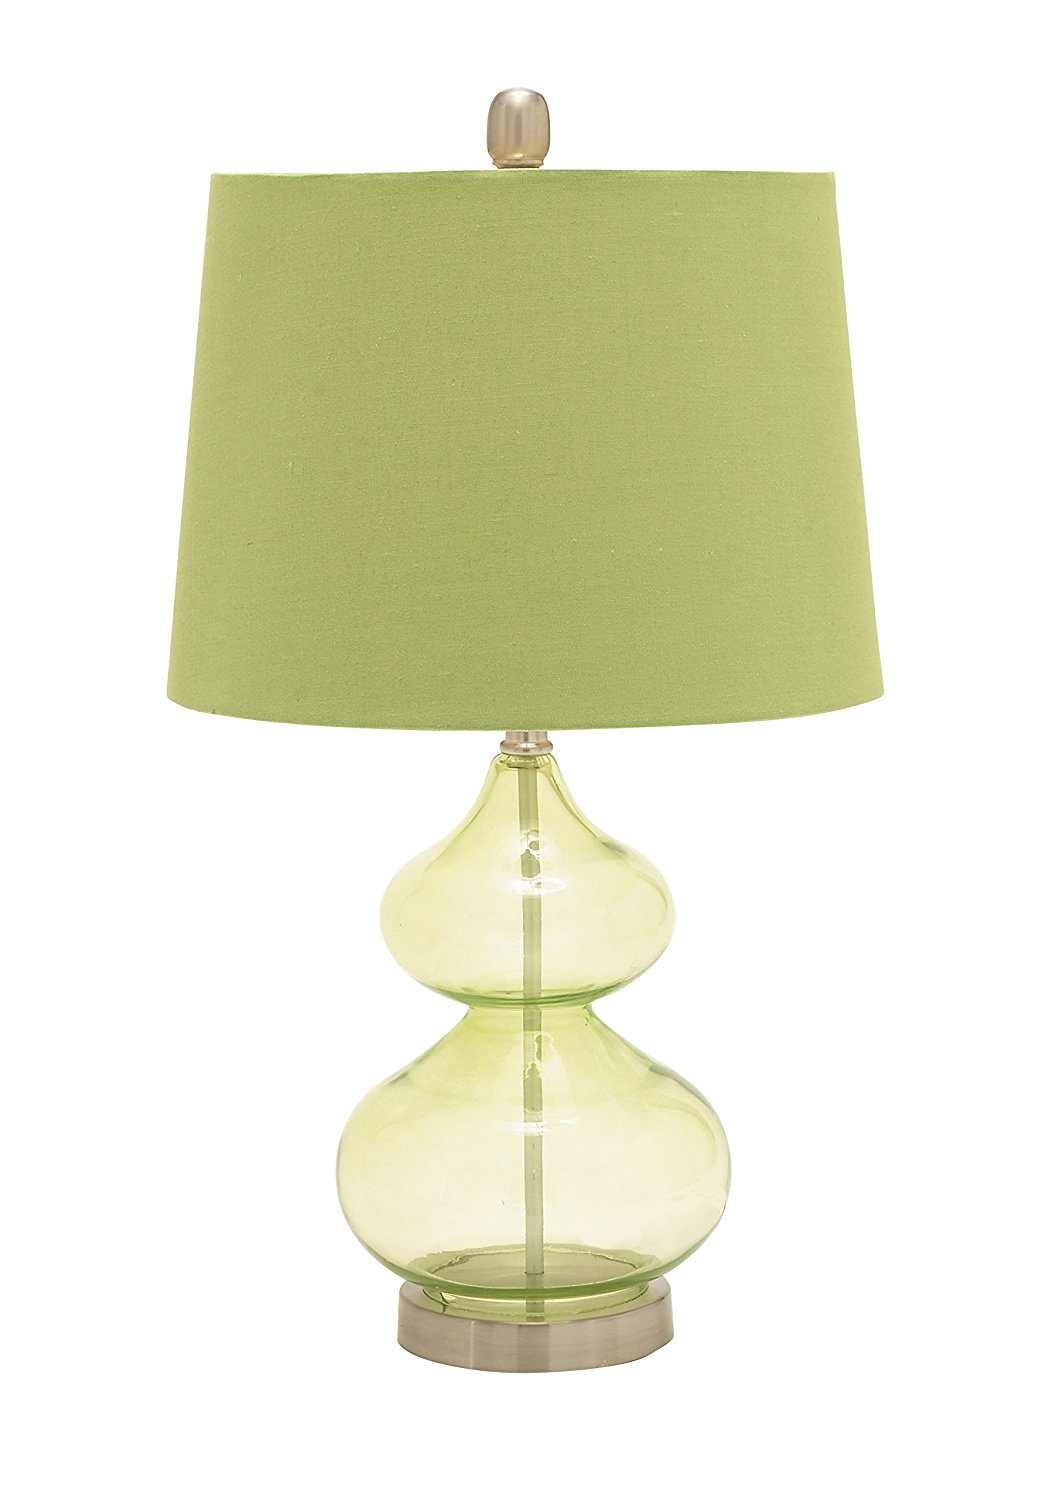 lamps sale lamp most floor cheap beautiful for table drum bedroom shades insight nightstands side